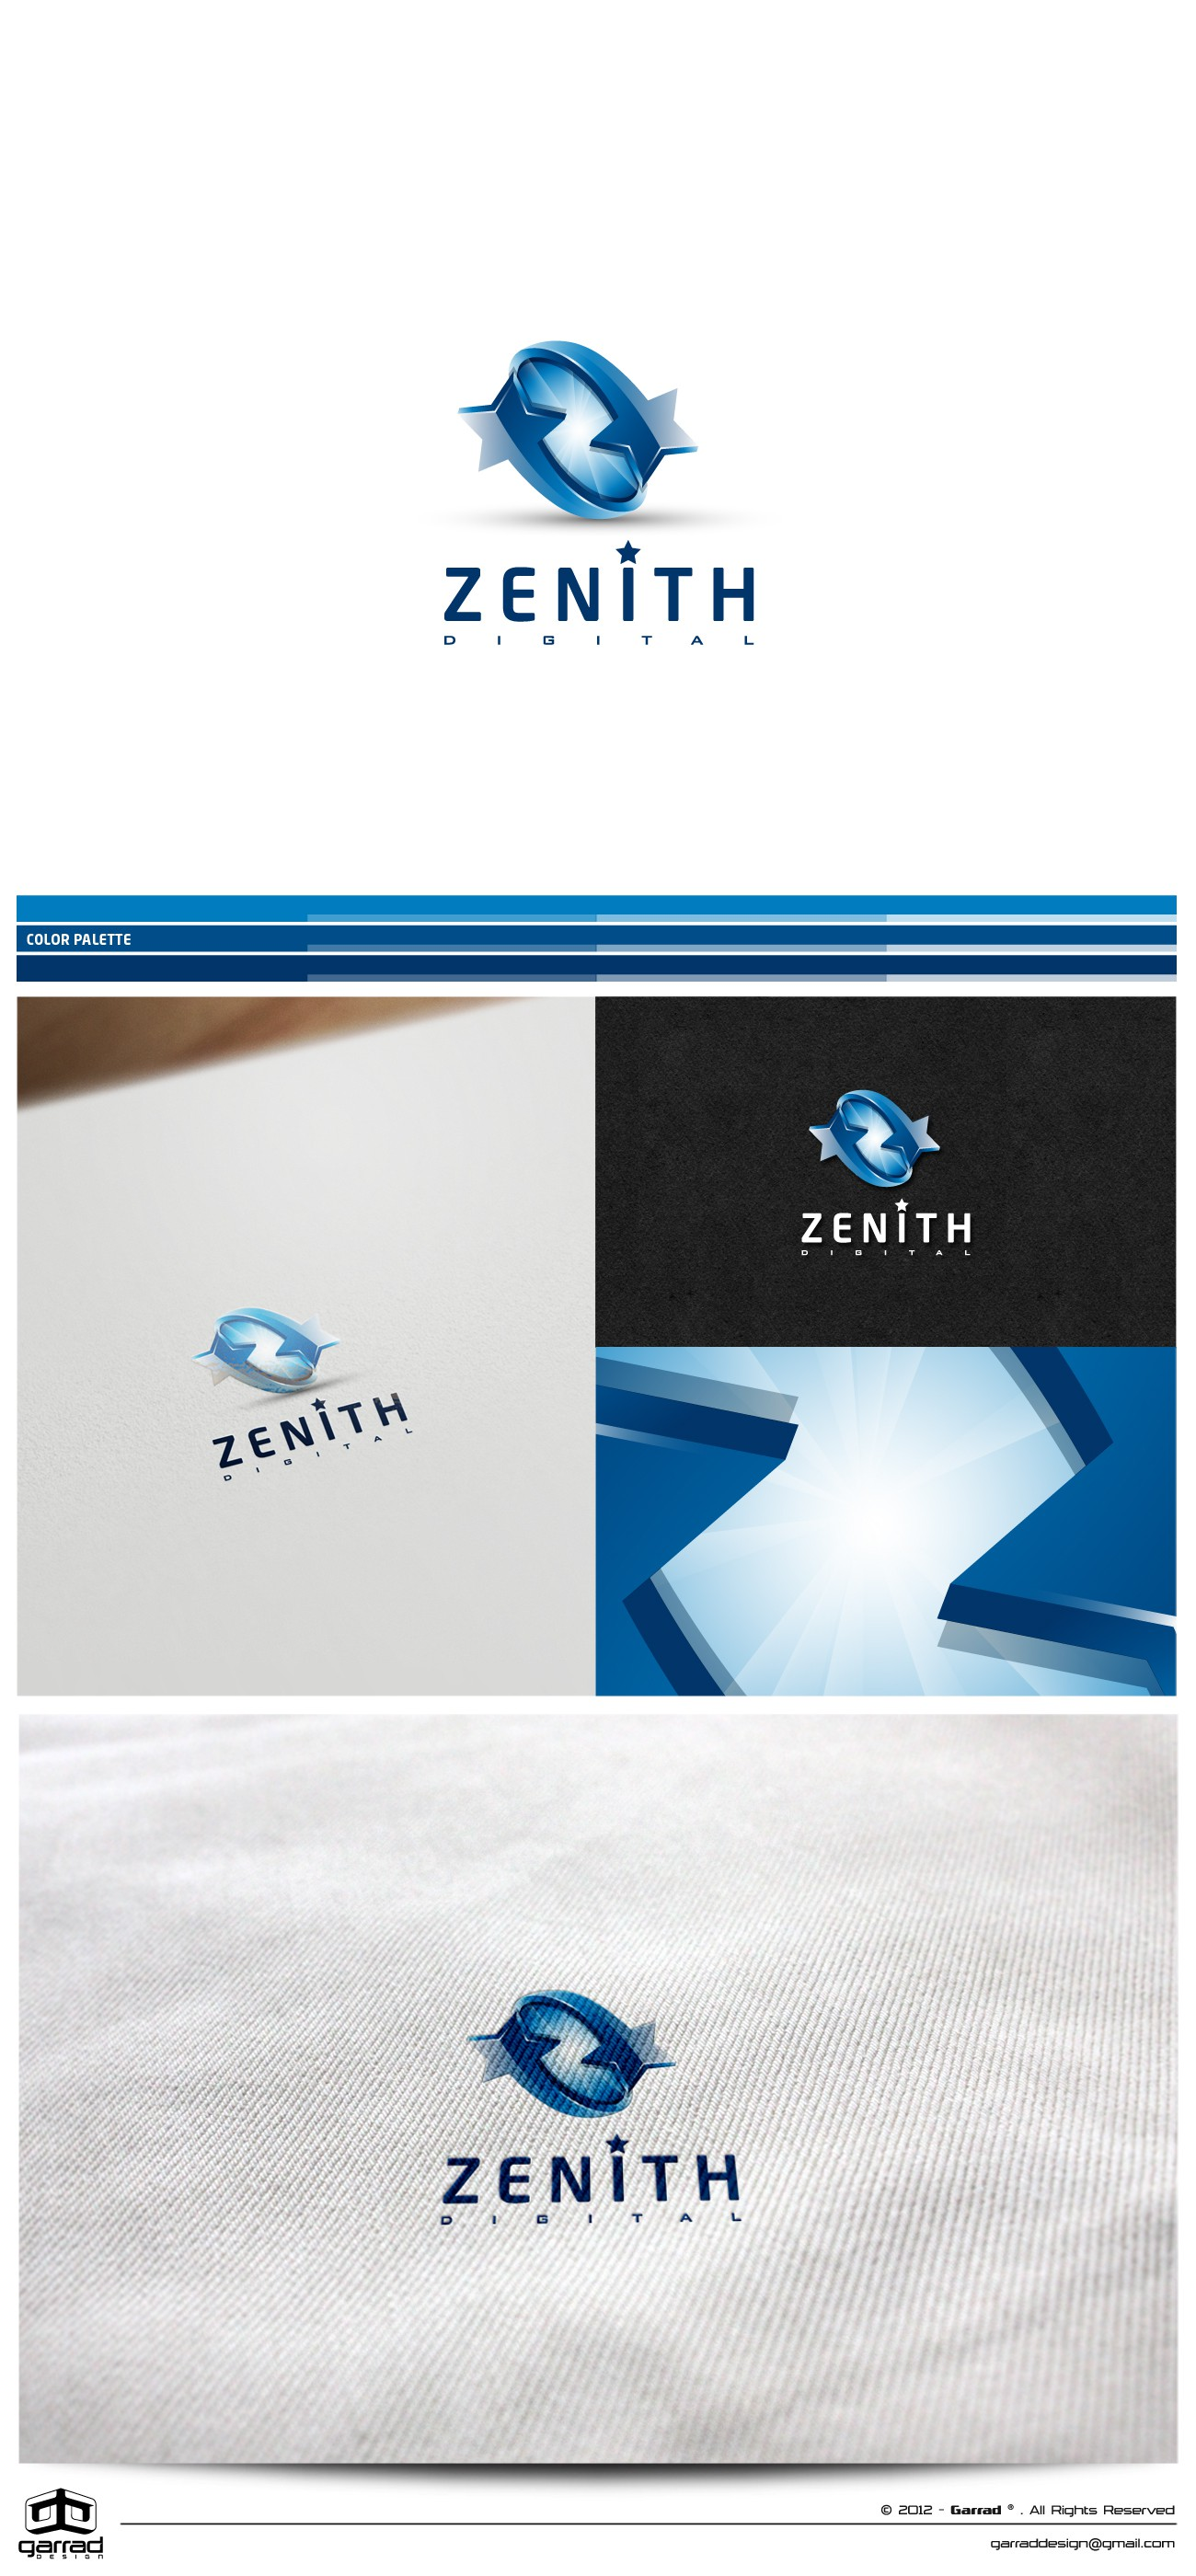 Create a slick futuristic logo design for Zenith Digital - Clear and good design brief.